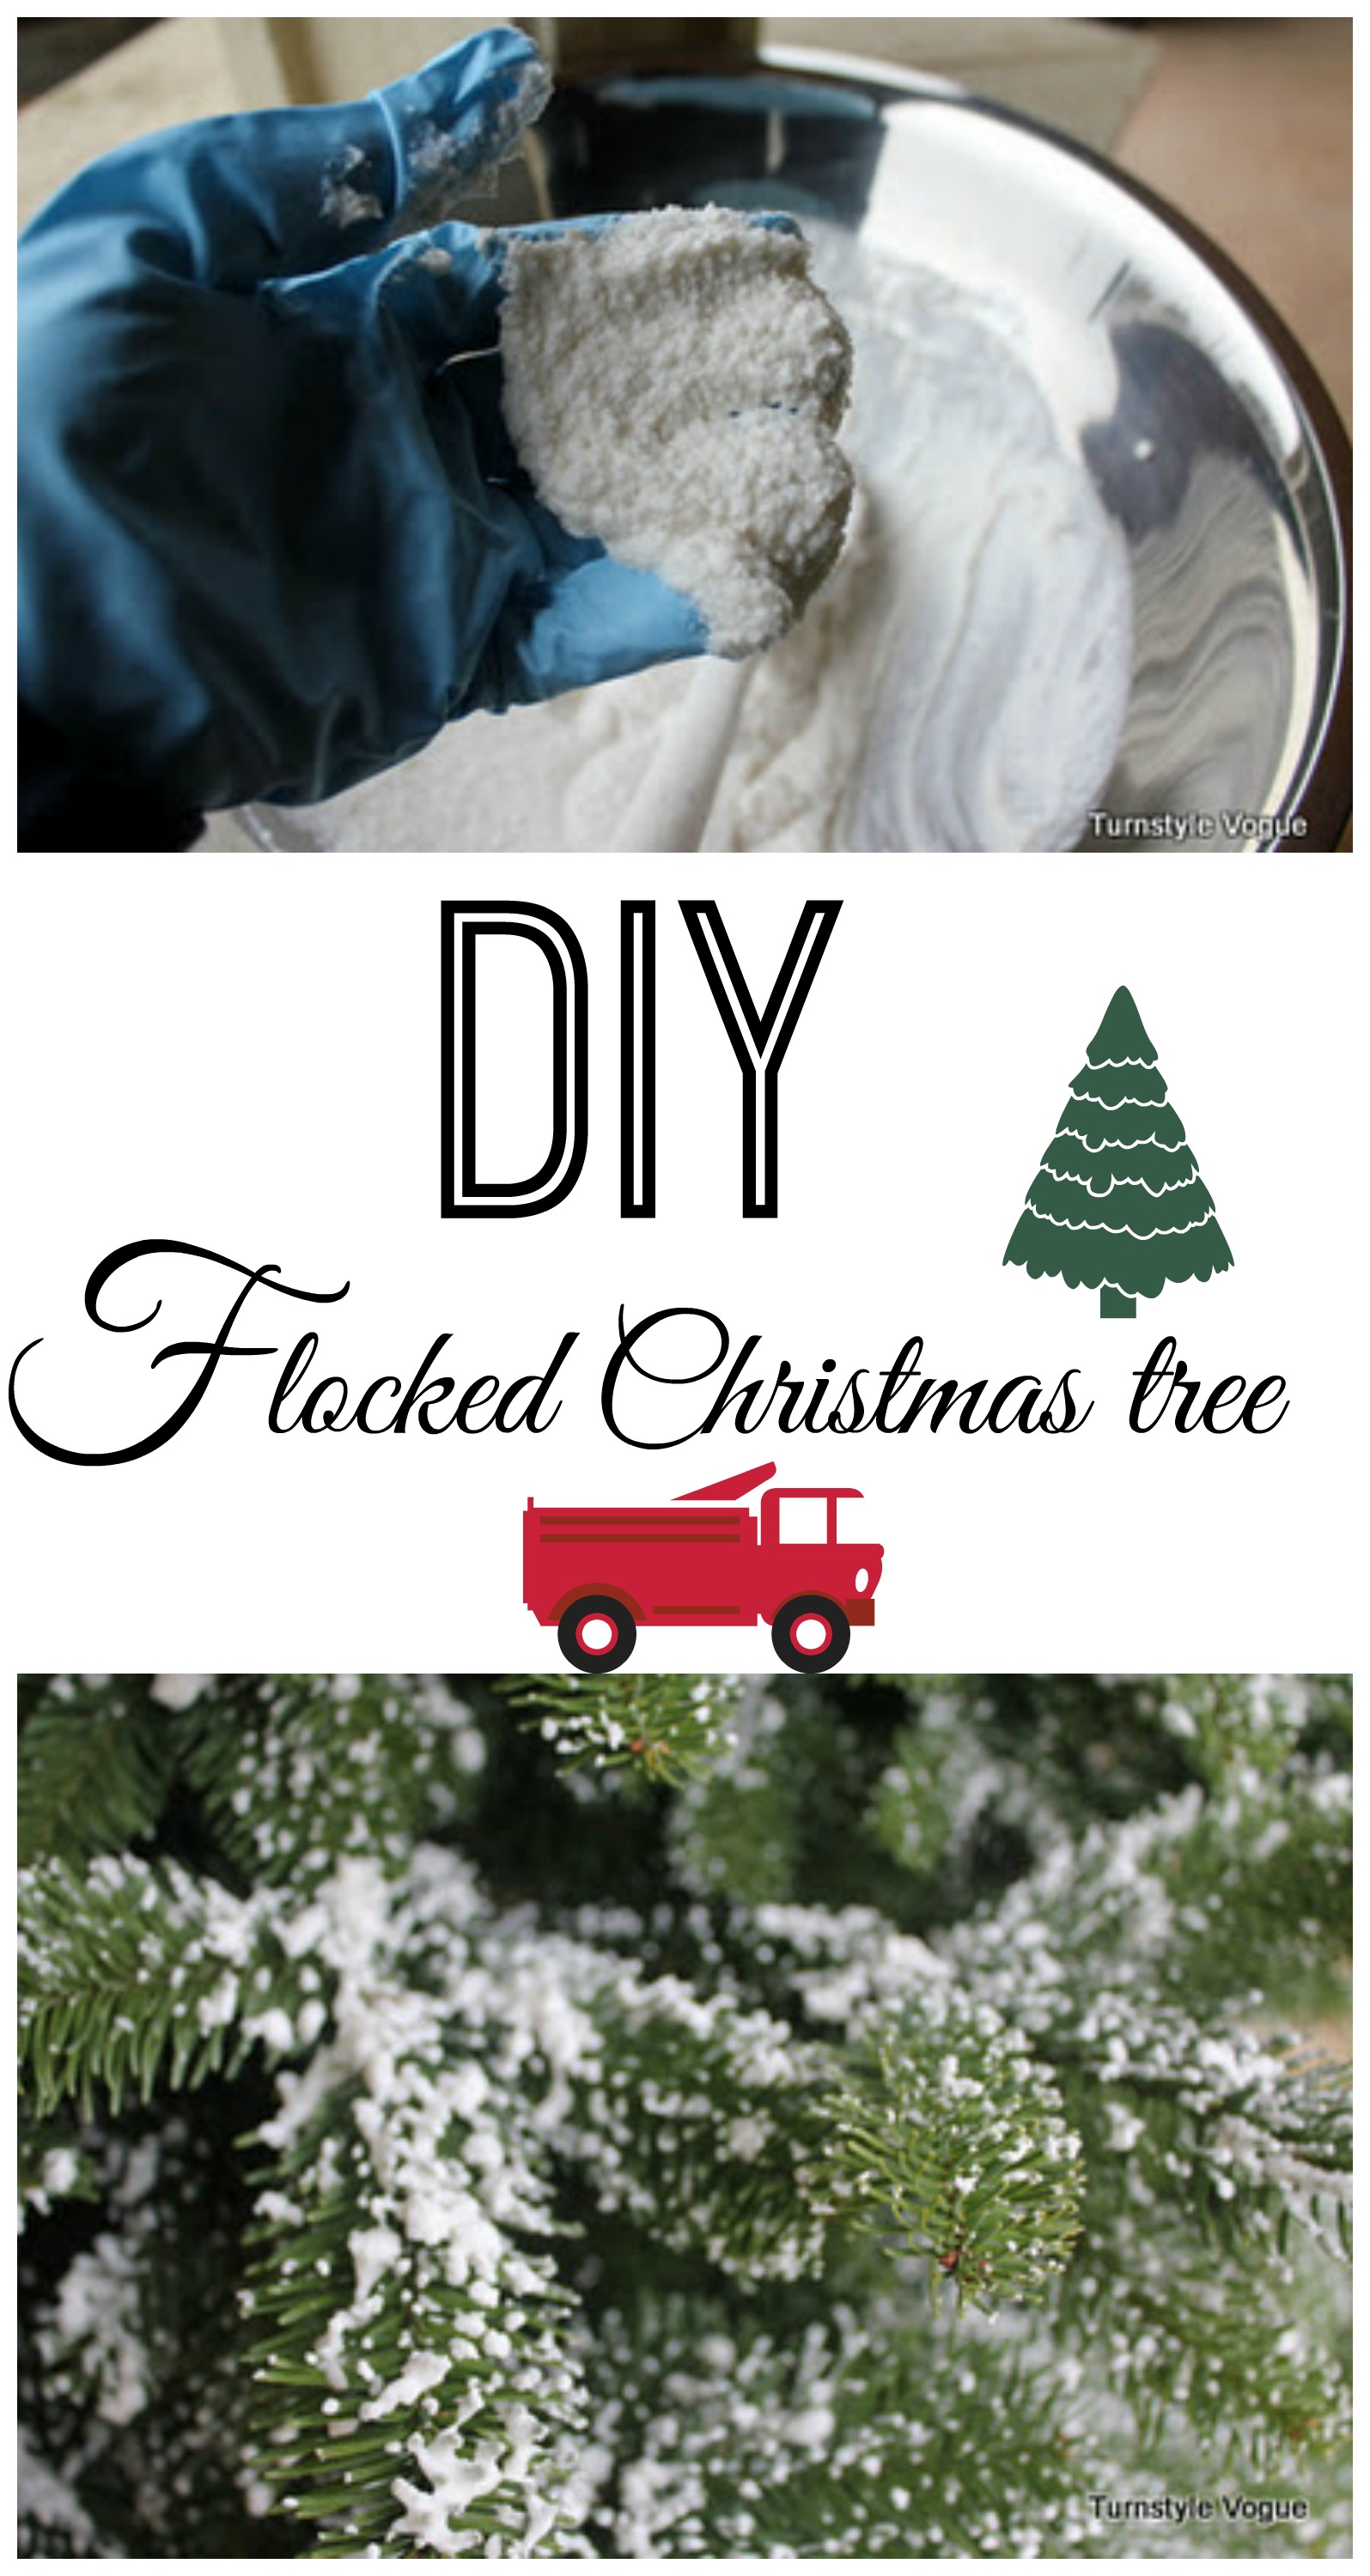 Diy flocked tree debbiedoos diy flocked christmas tree solutioingenieria Image collections